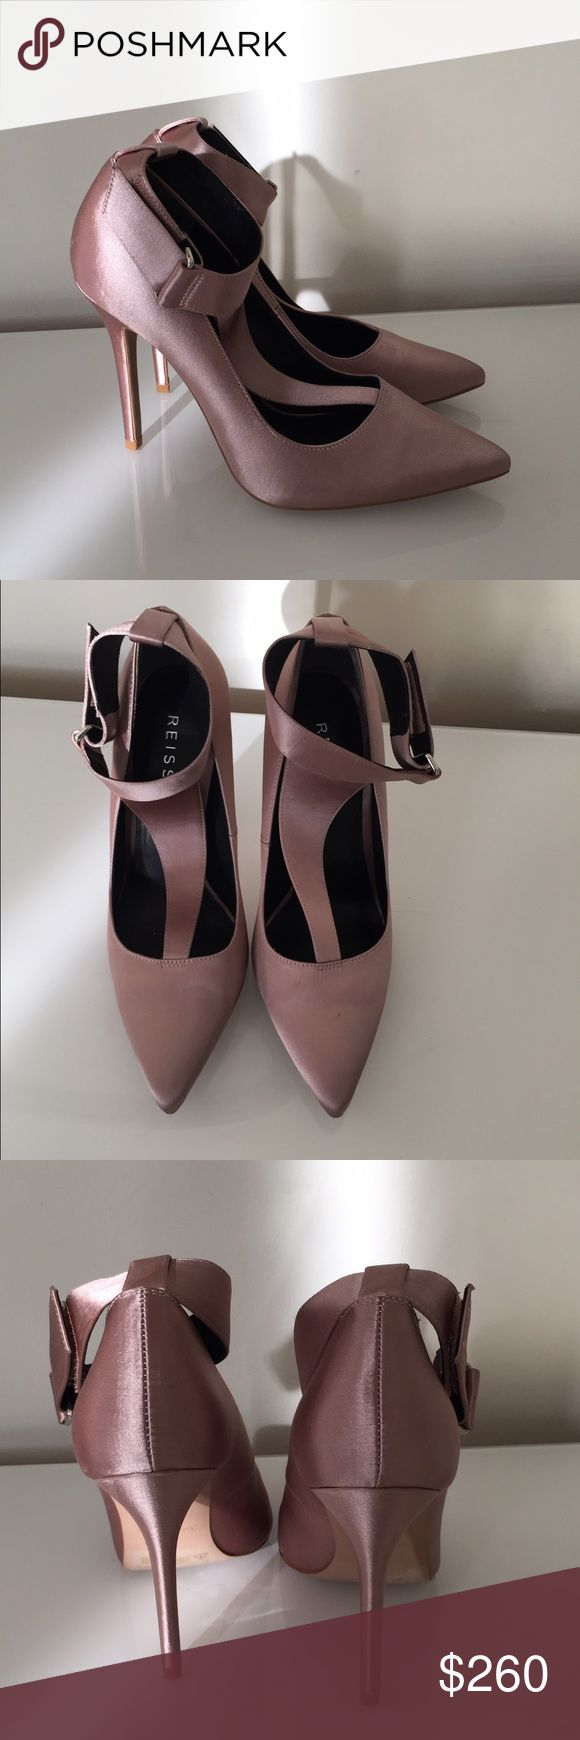 NEW REISS Blush Satin T-Strap Pumps 38 New without box. REISS satin t-strap pumps in blush color. Pointy toe. Hidden velcro at ankle strap for fit. Reiss Shoes Heels